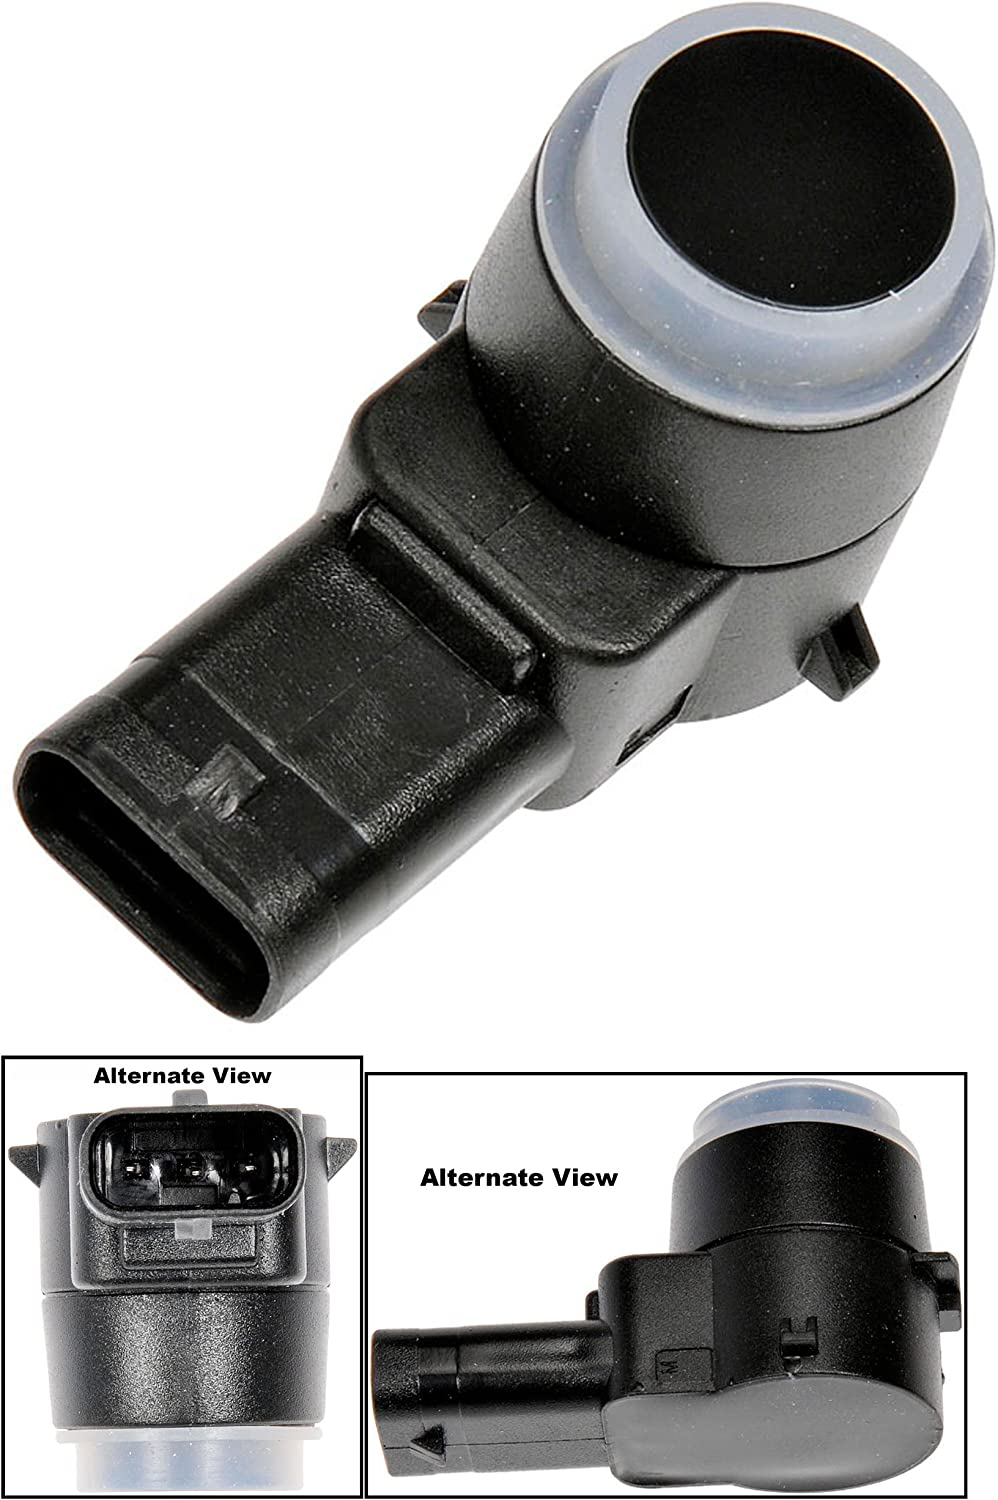 APDTY 795146 Parktronic Reverse Backup Park Aid Parking Assist PDC Sensor Fits Numerous Mercedes Benz Models; View Compatability Chart; Replaces 000 905 24 02, 0009052402, 2215420417, 221 542 04 17